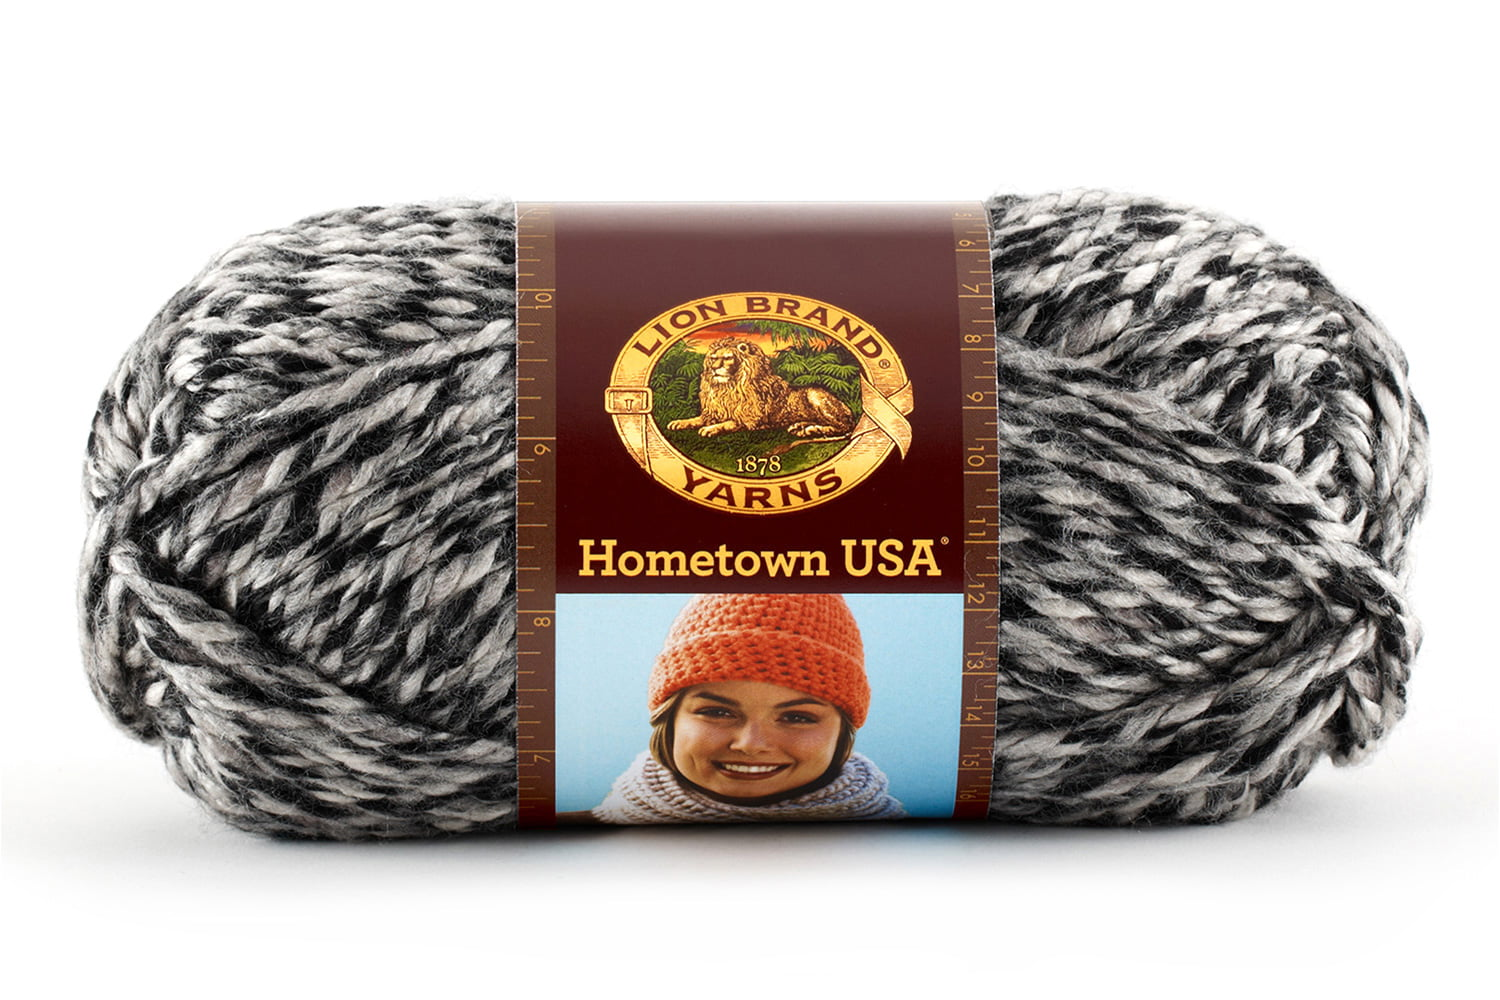 Pack of 3 skeins Anchorage Ice Lion Brand Yarn 135-216 Hometown USA Yarn